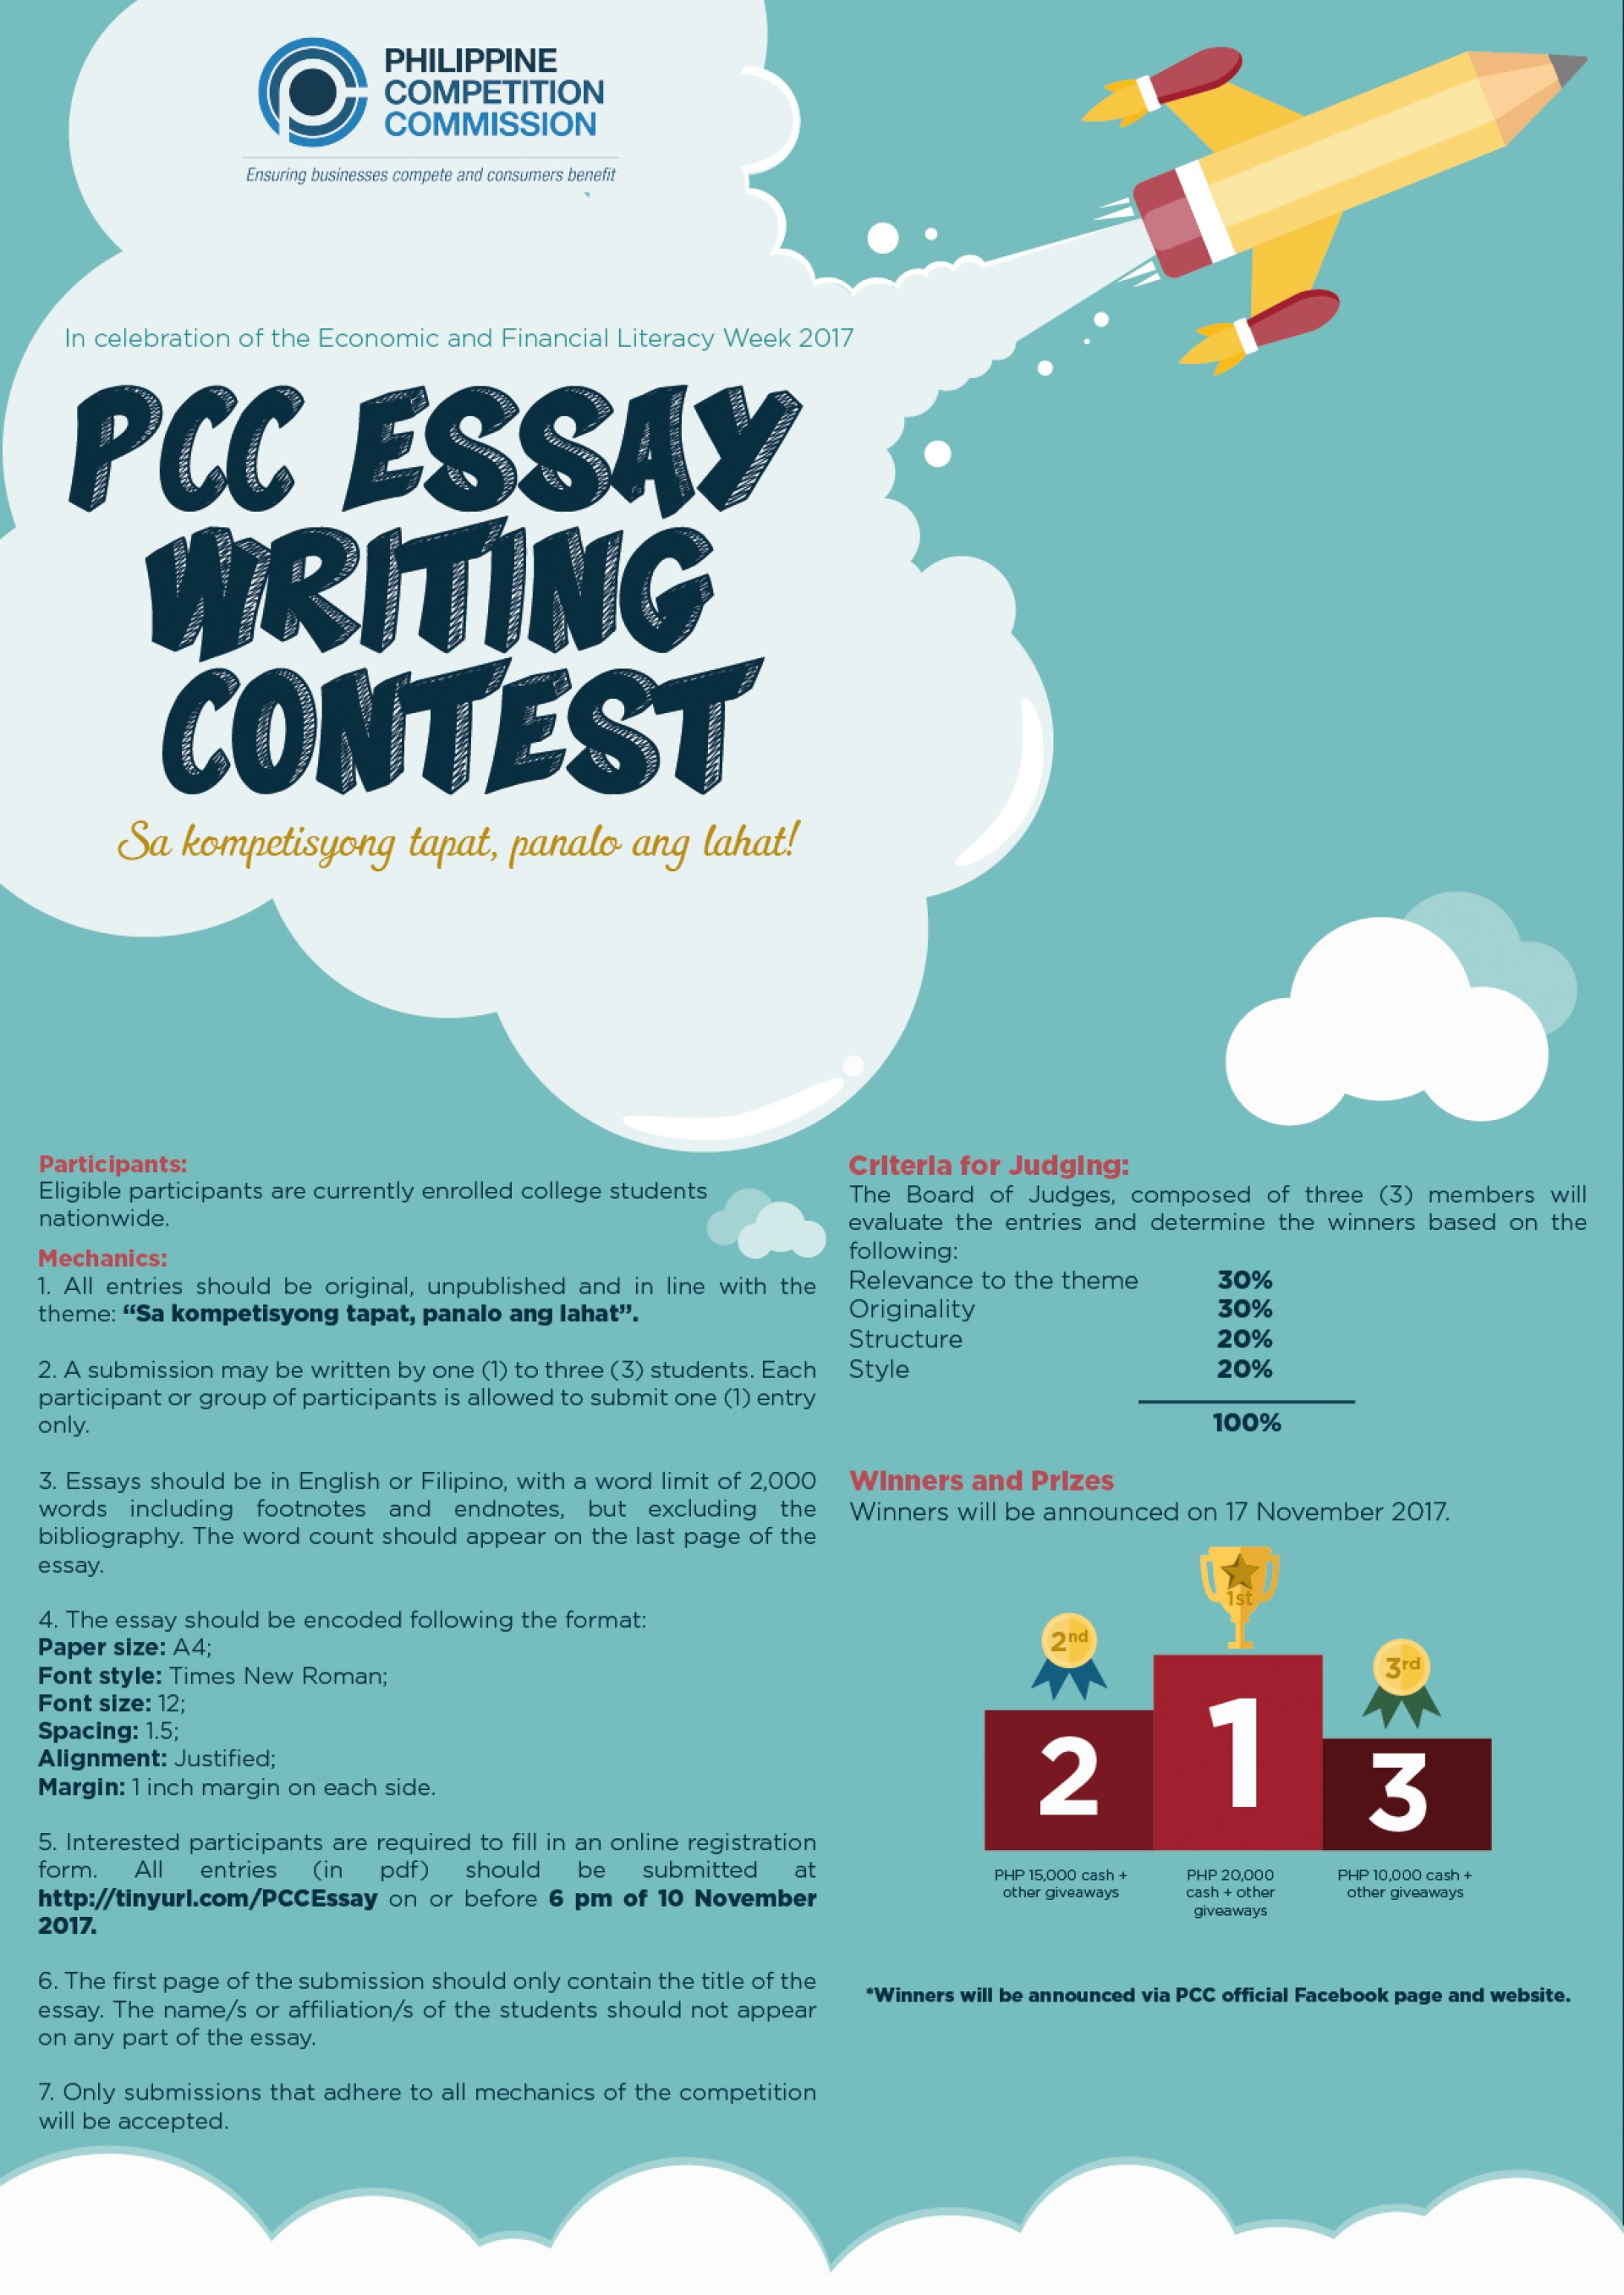 004 Essay Example Writing Contest Poster Final Incredible Free Contests 2018 International Competitions For High School Students India 1920